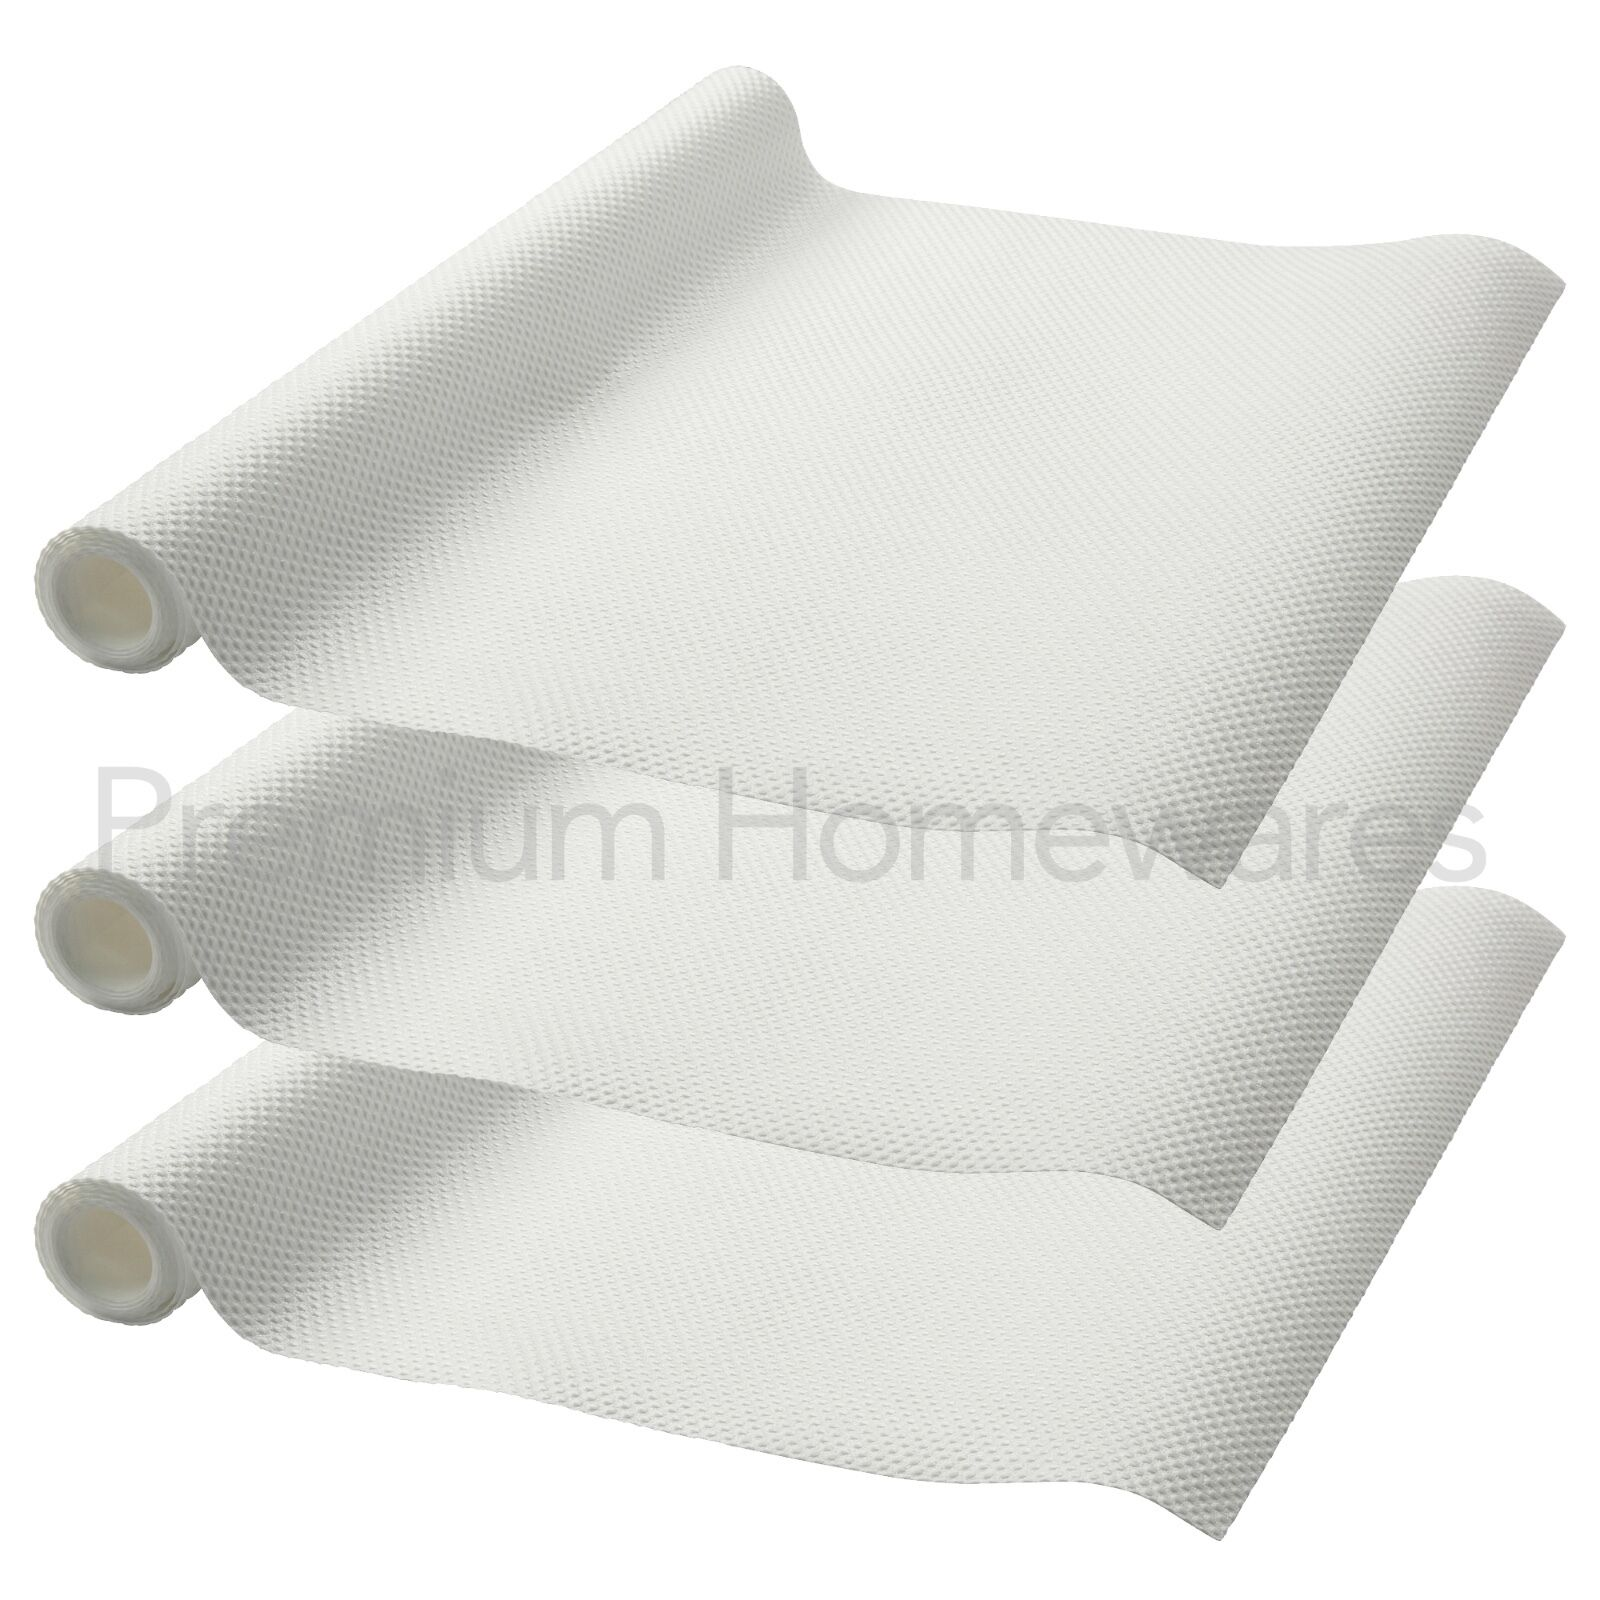 Drawer Liners Household & Laundry Supplies Home Furniture & DIY